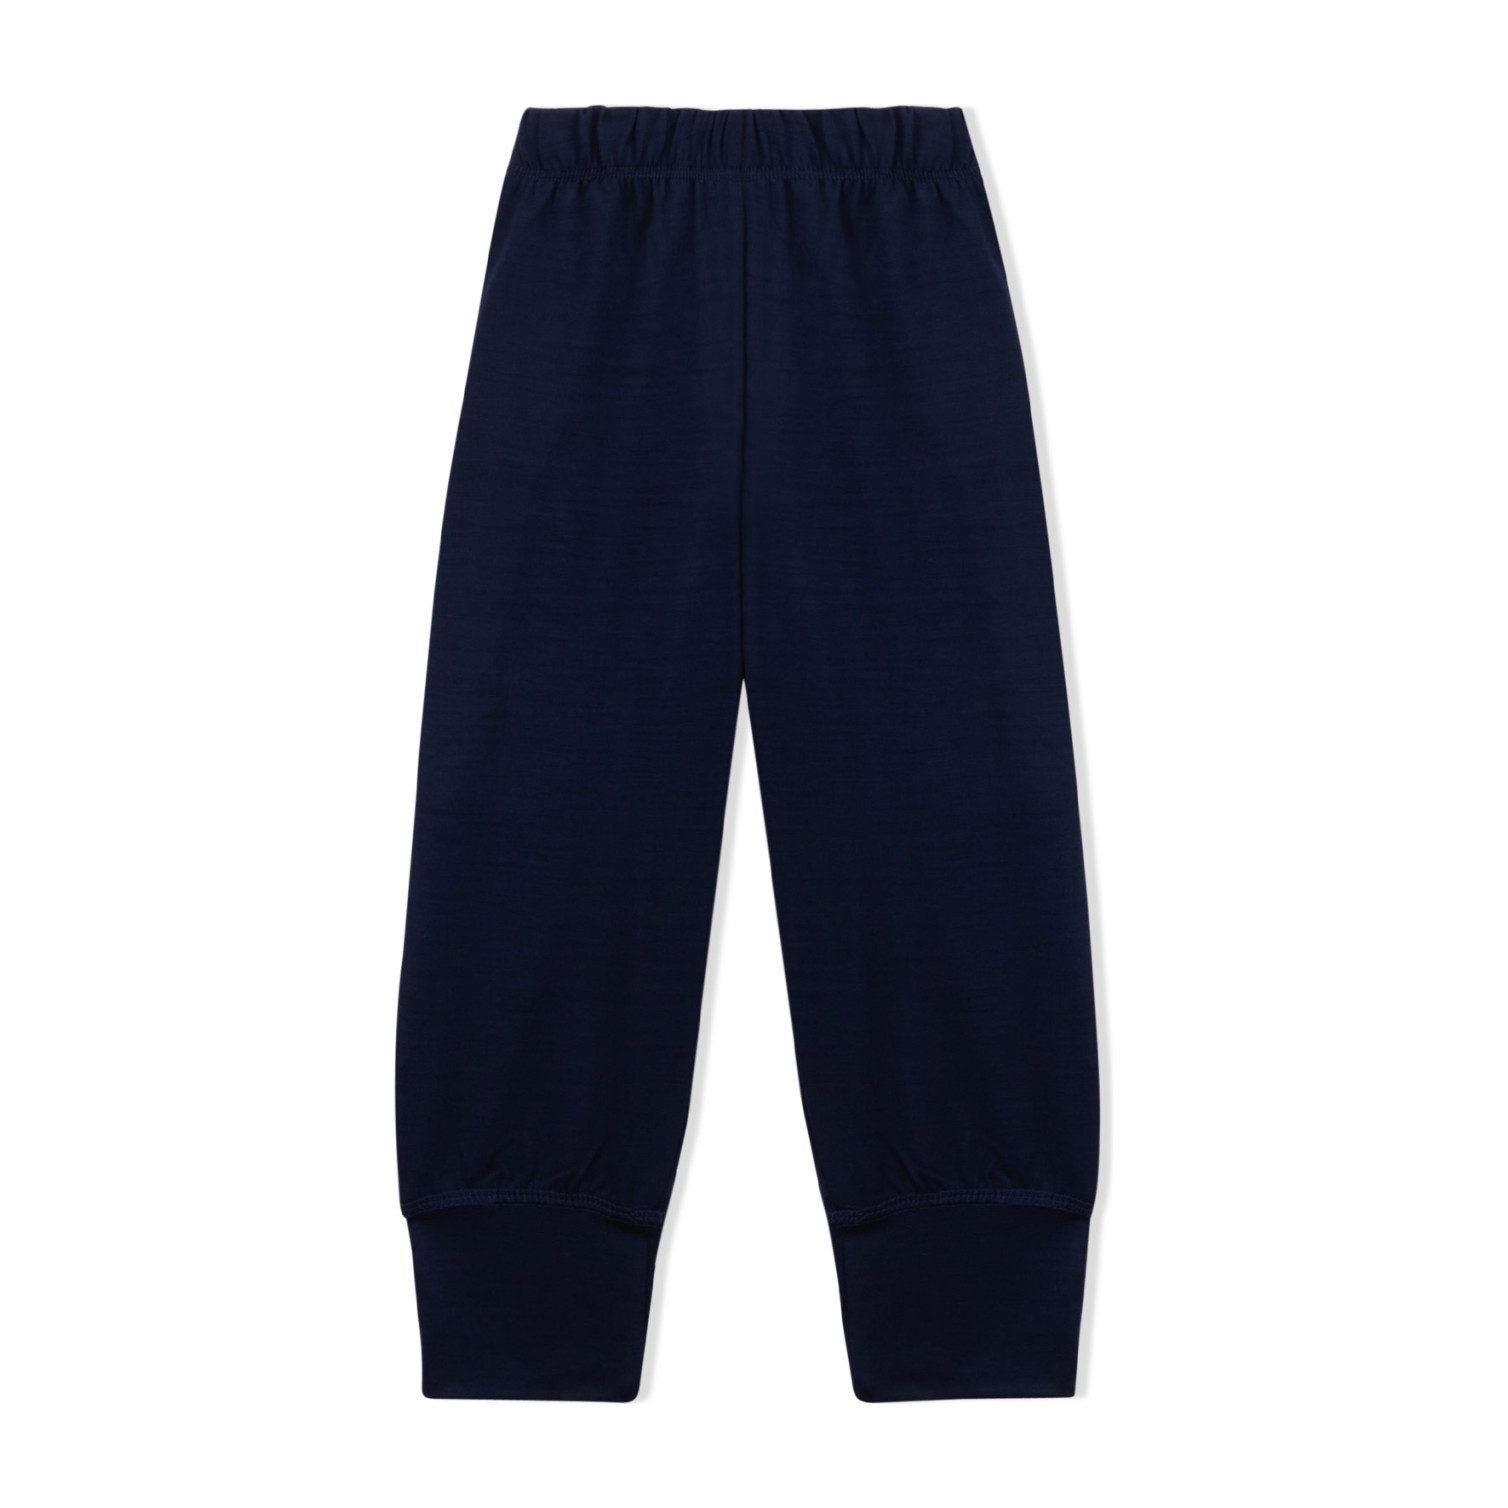 Essential Merino Lounge Pants - Knot x Antipodes Merino (Navy Blue)